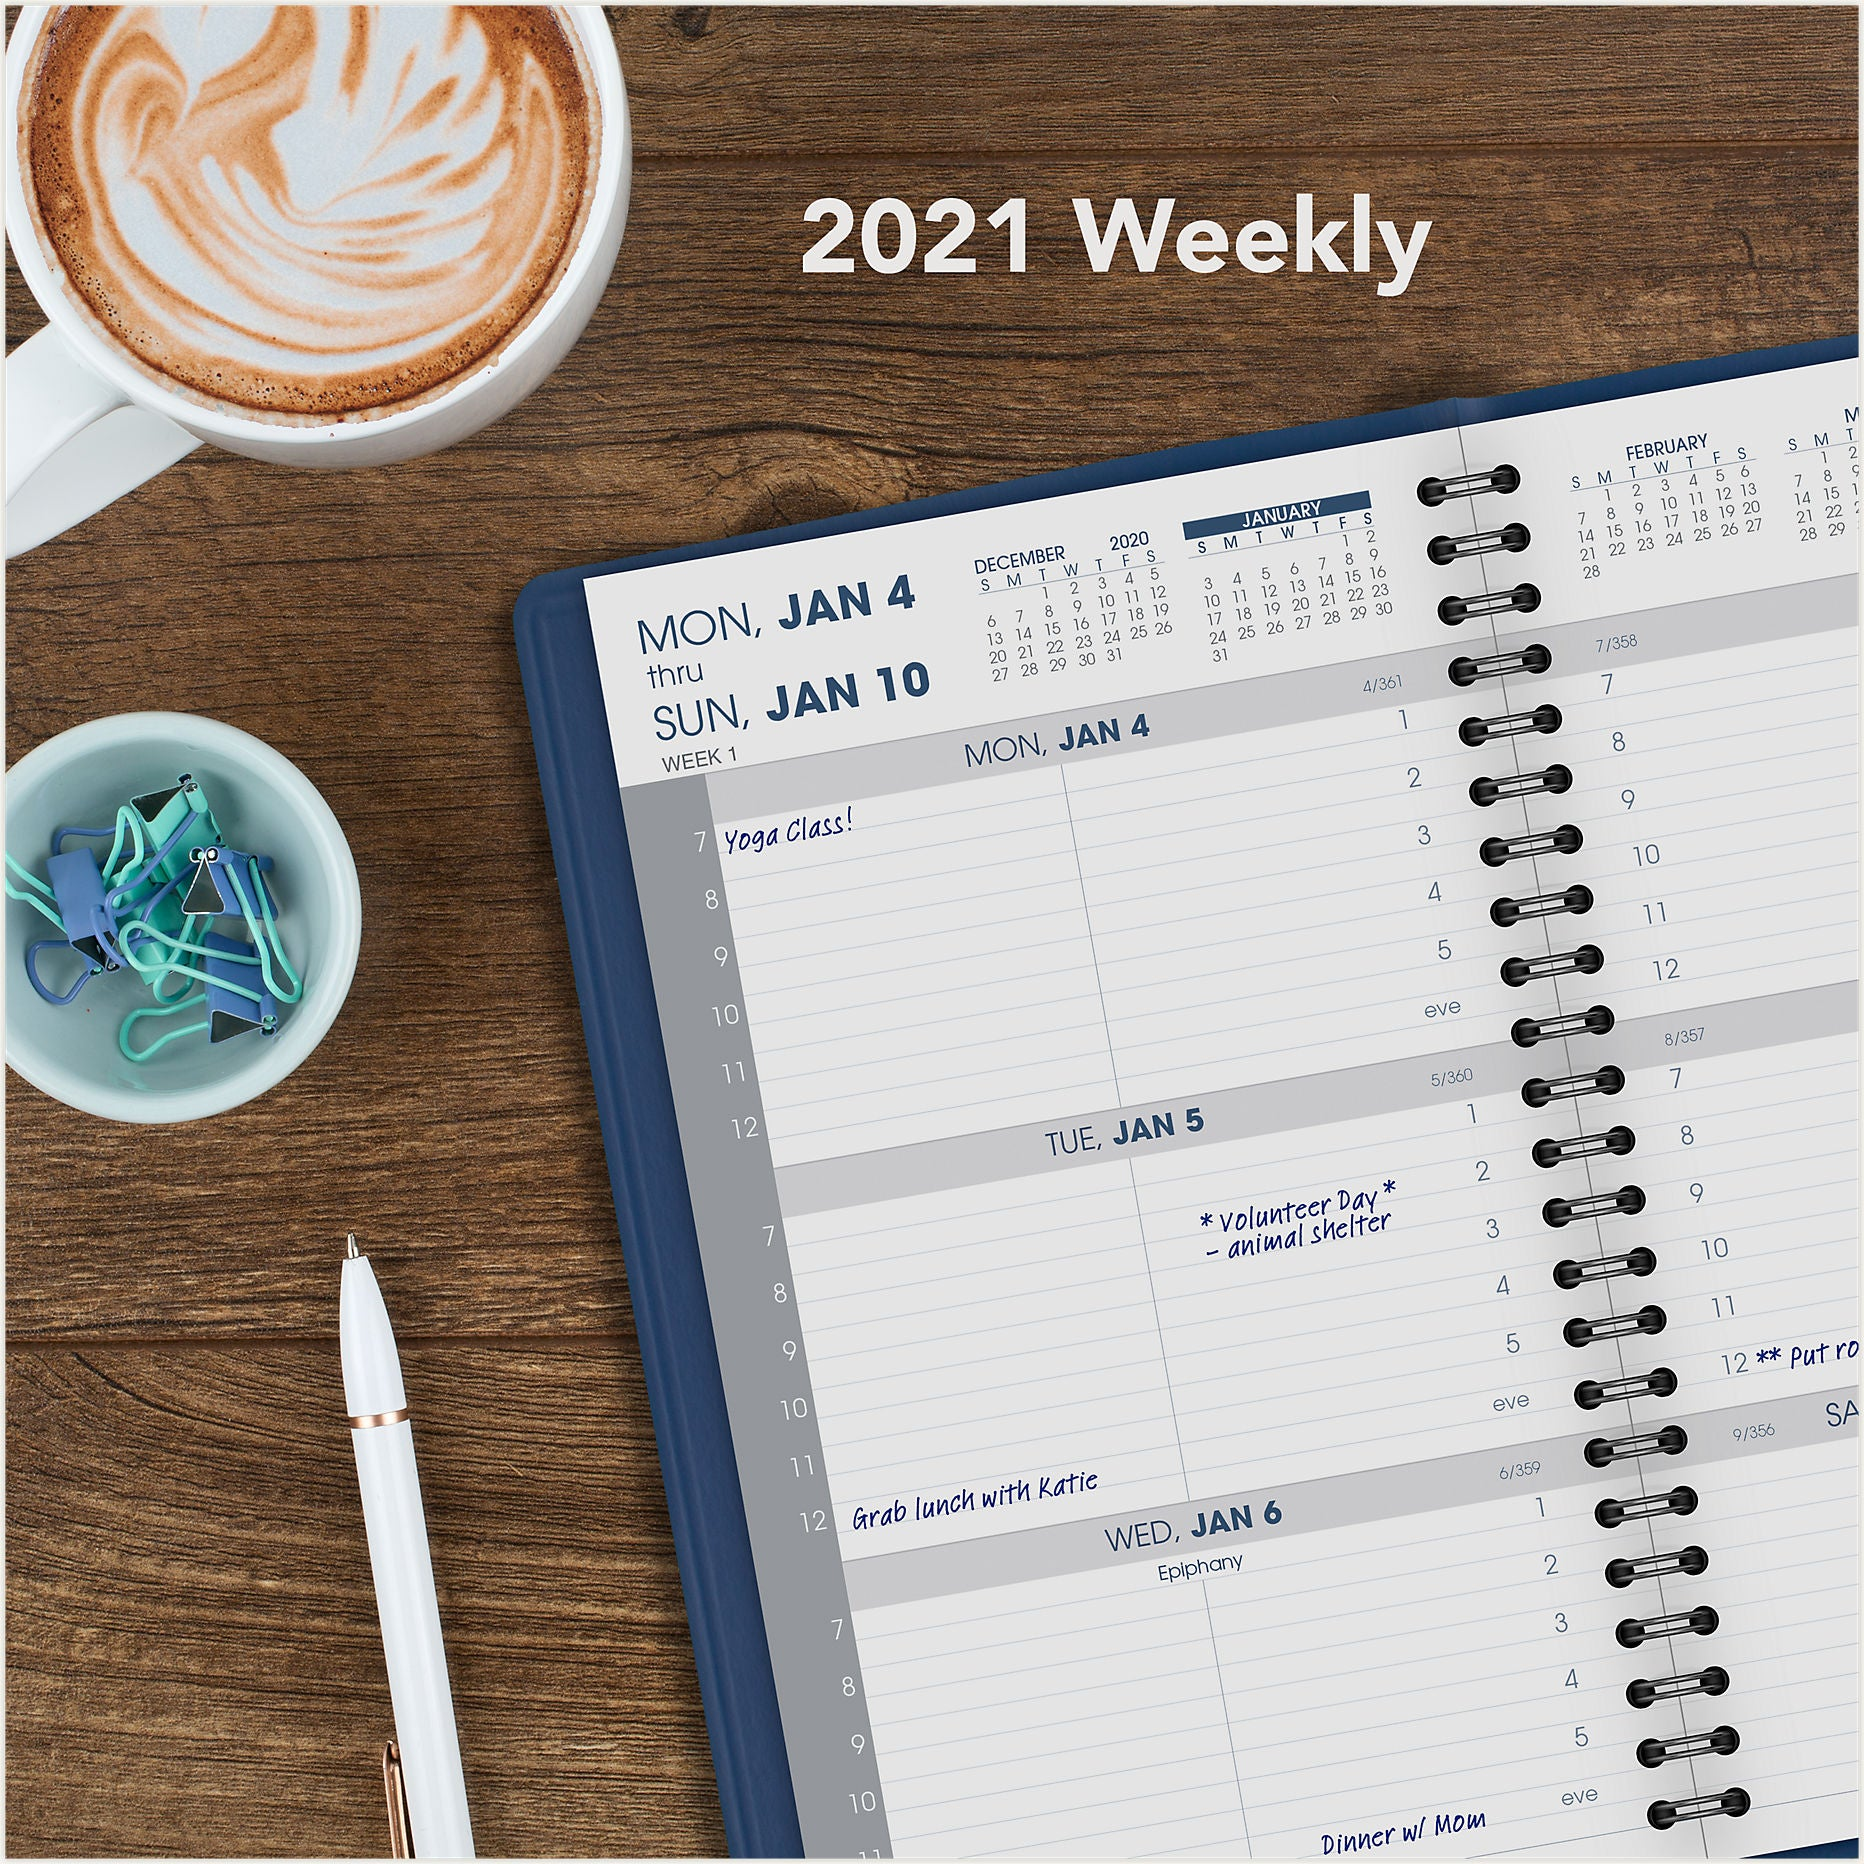 70-108-20  BLUE WEEKLY AT A GLANCE CALENDARS 2021